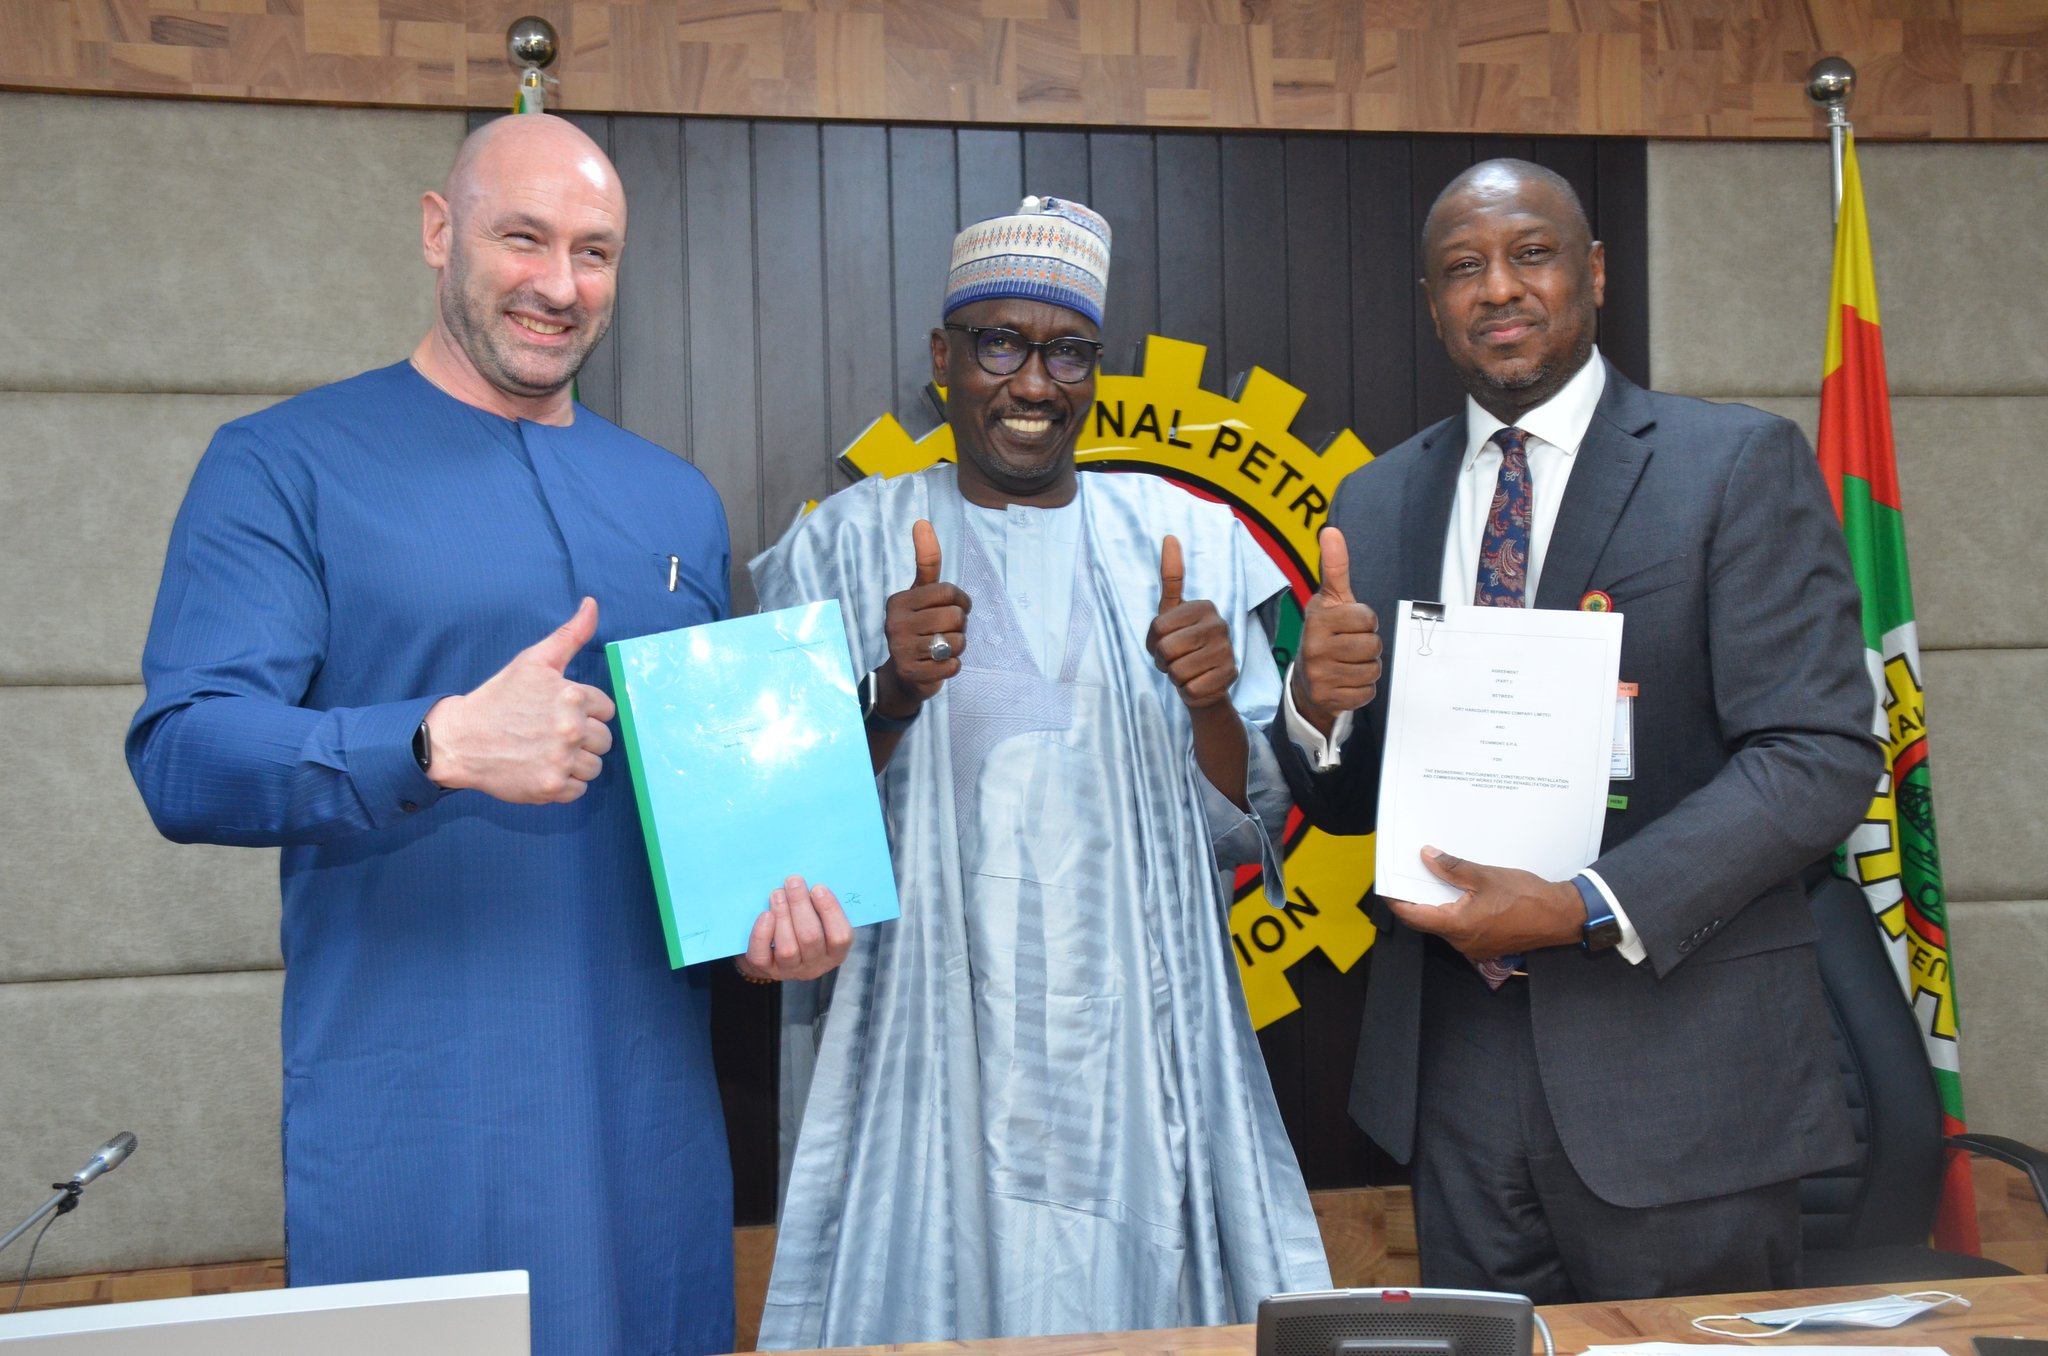 The historic Sign-off Ceremony of Engineering, Procurement & Construction (EPC) Contract for the Rehabilitation of Port Harcourt Refining Company (PHRC) between NNPC & Tecnimont SpA at the NNPC Towers